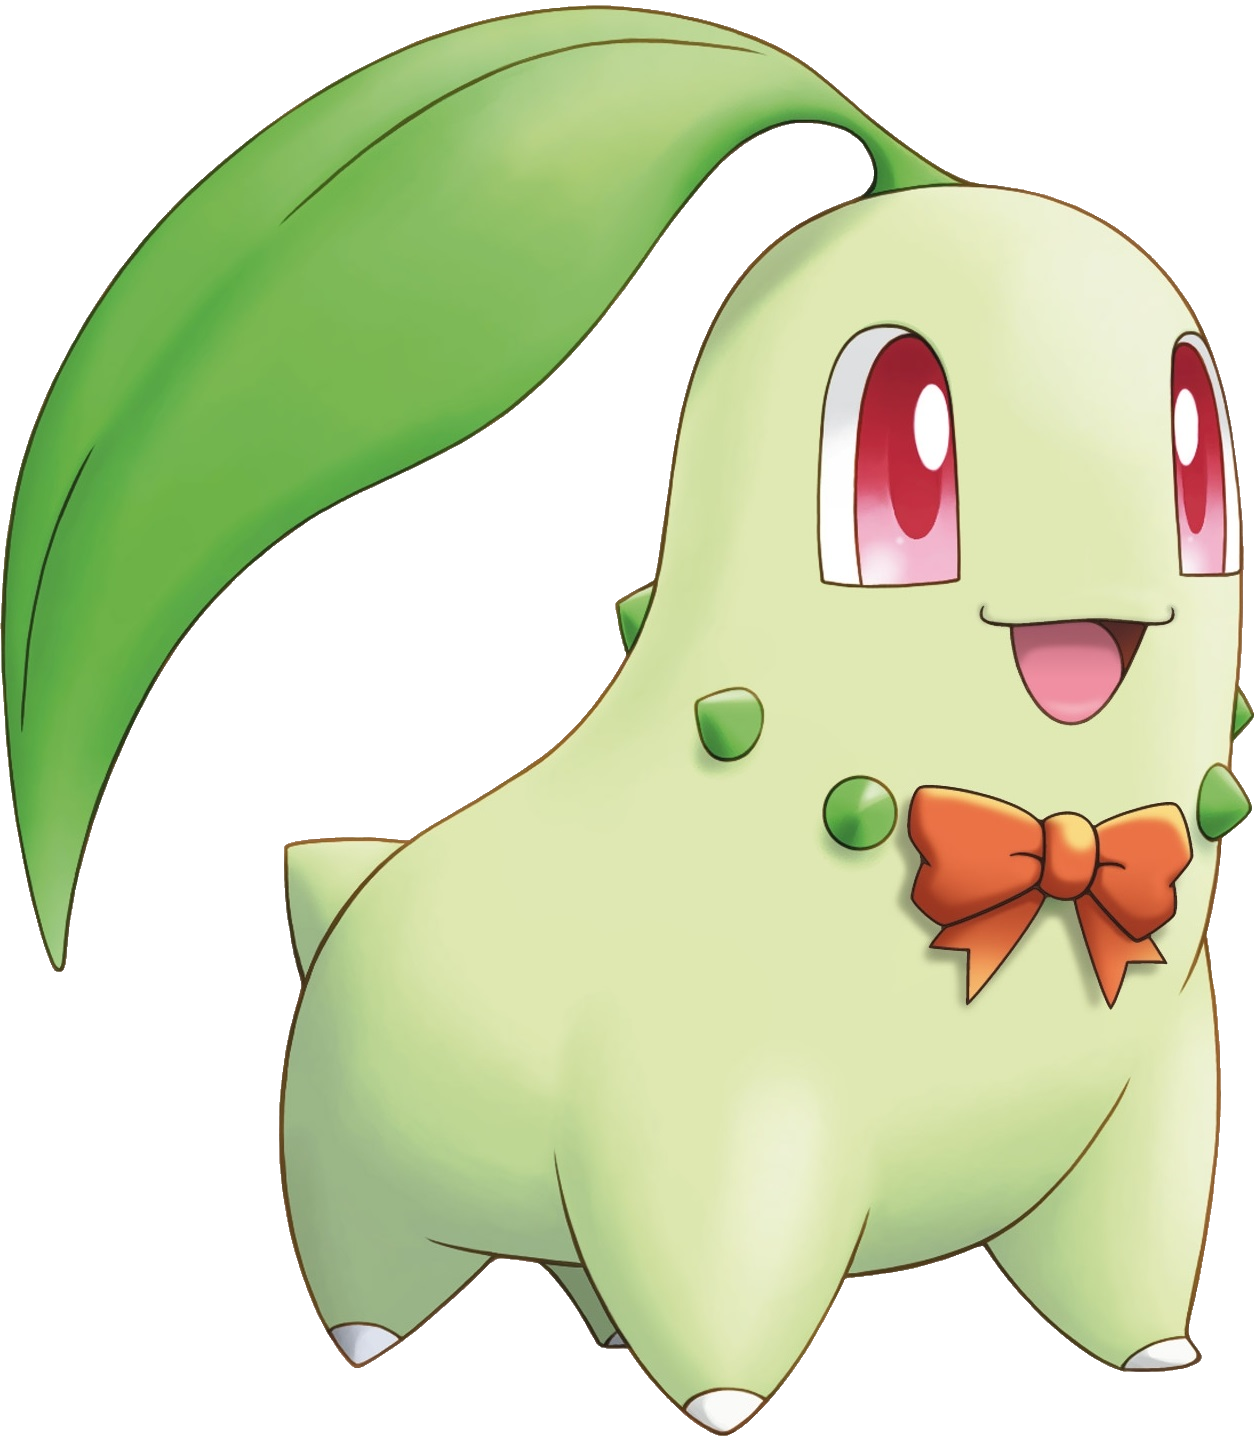 Mystery clipart icon. Pokemon png image without